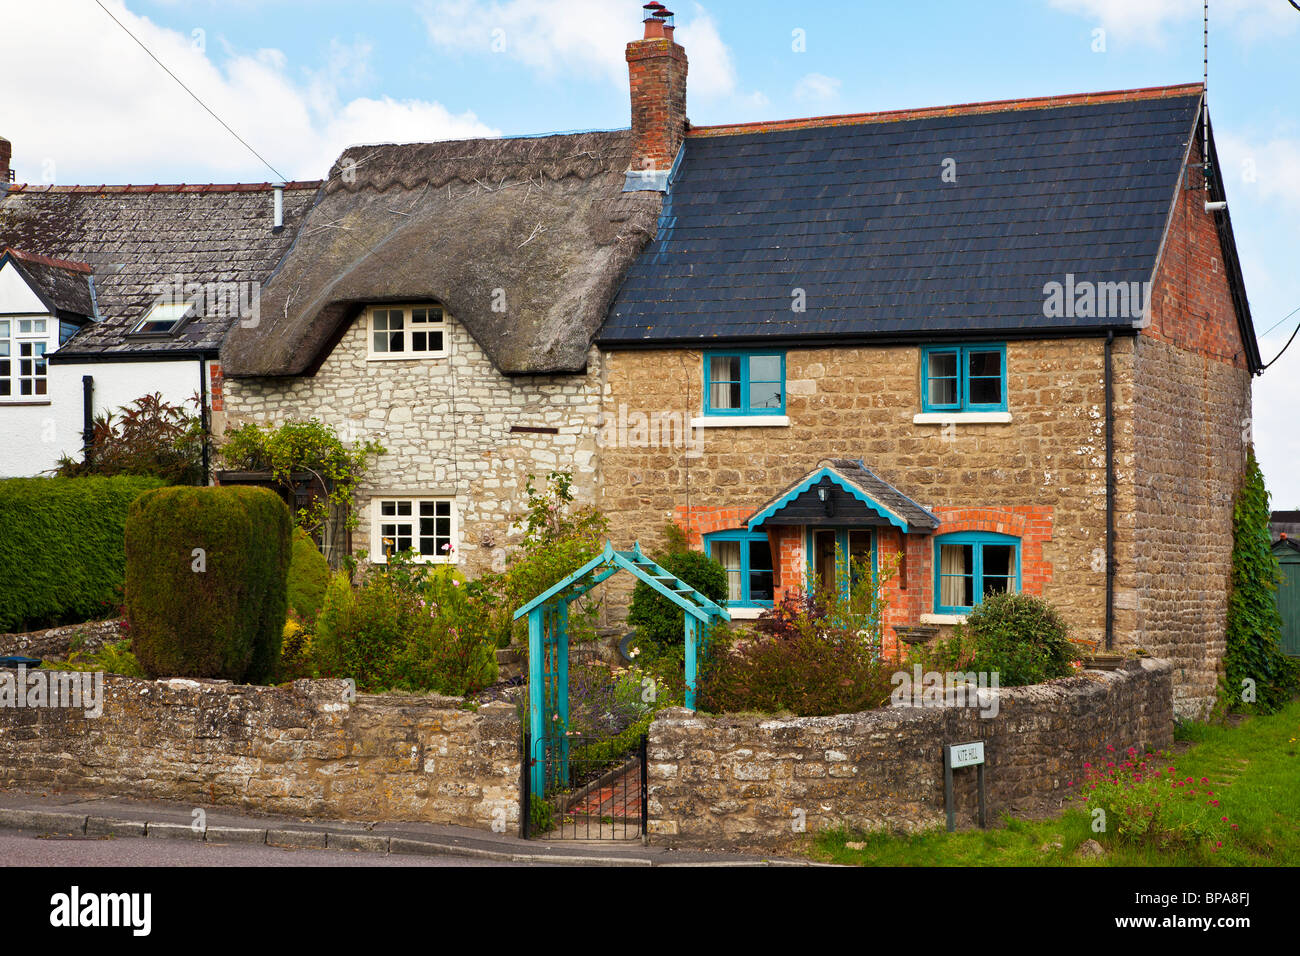 Two typical English stone cottages, one with tiled roof and one thatched. - Stock Image